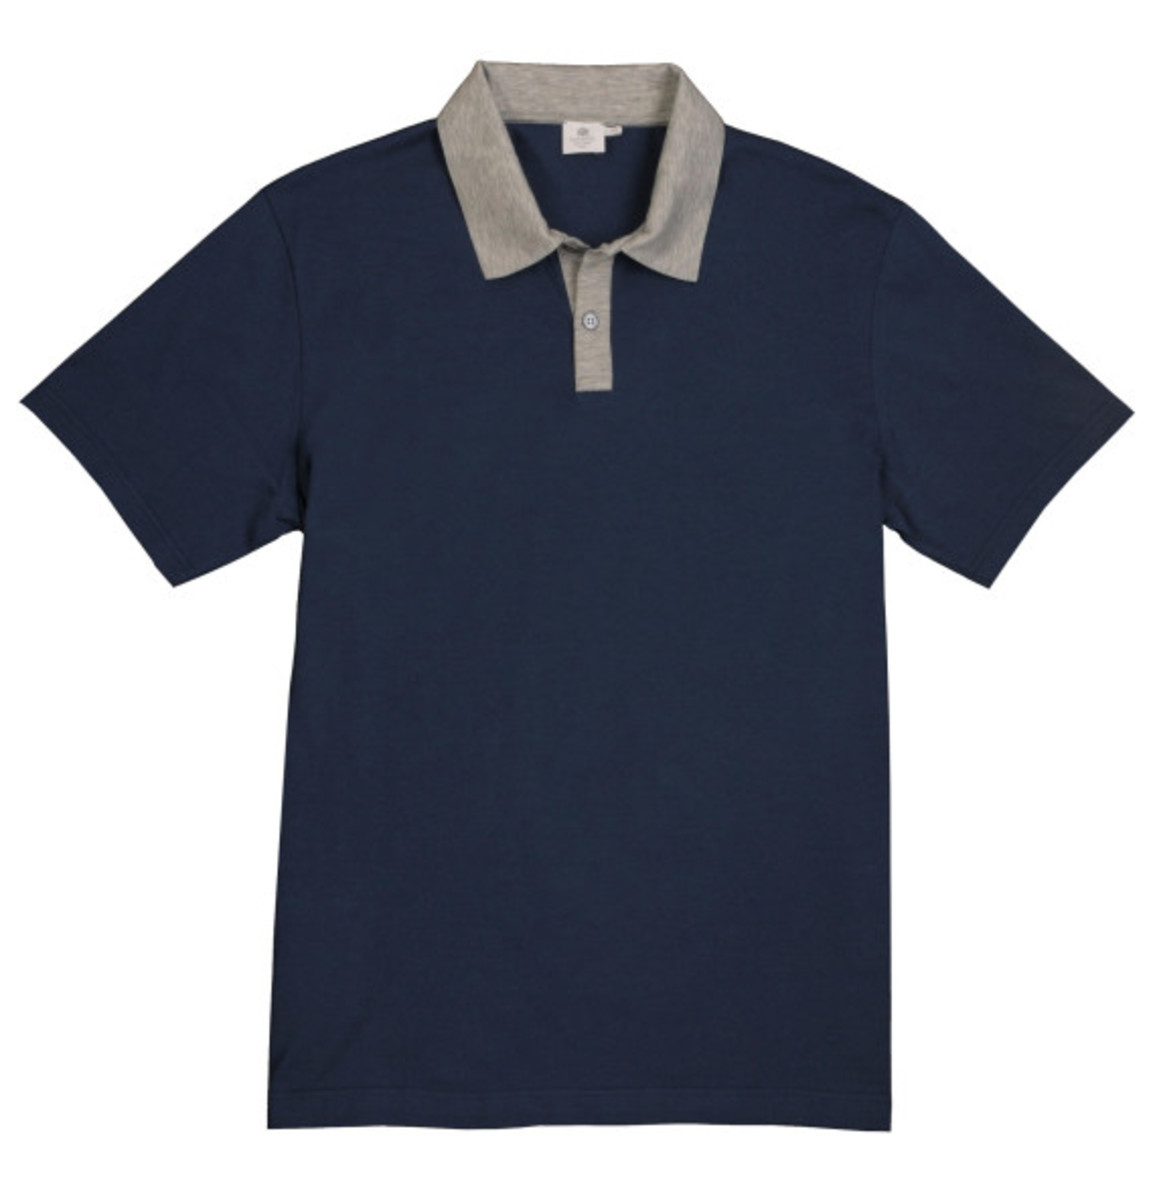 unionmade-sunspel-shirting-collection-01